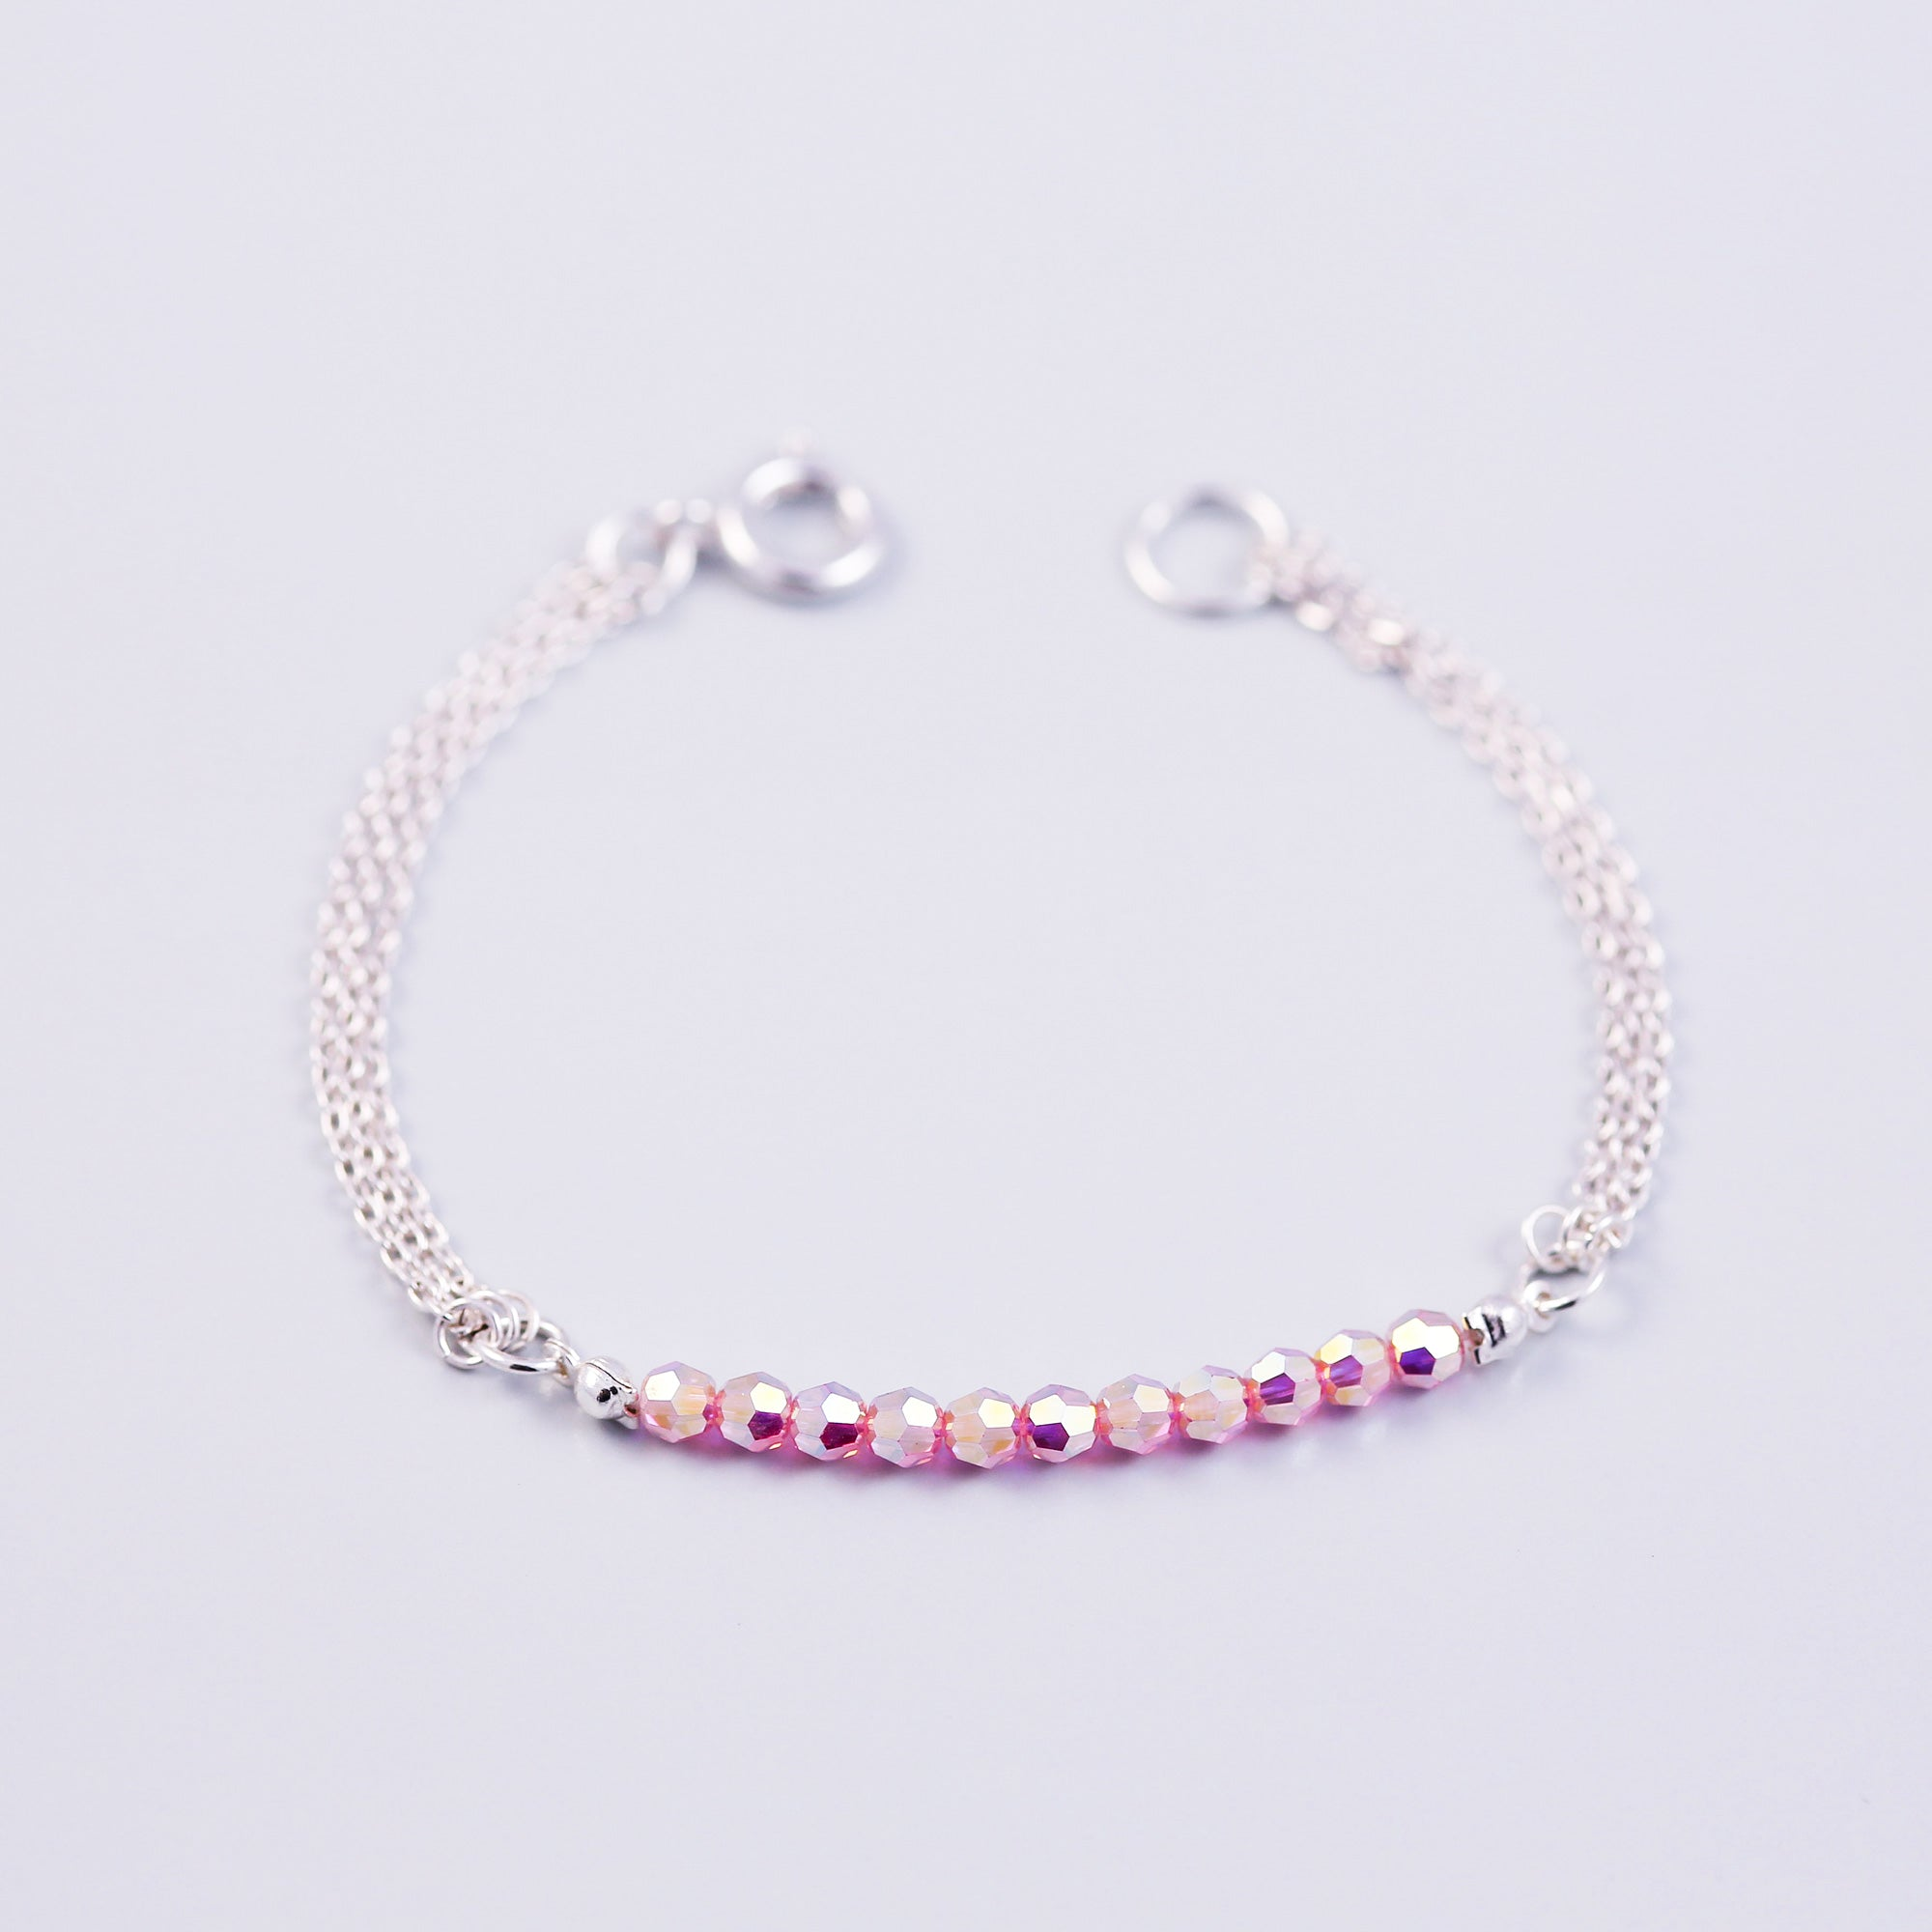 Crystal Bead Bracelet Silver & Light Rose AB